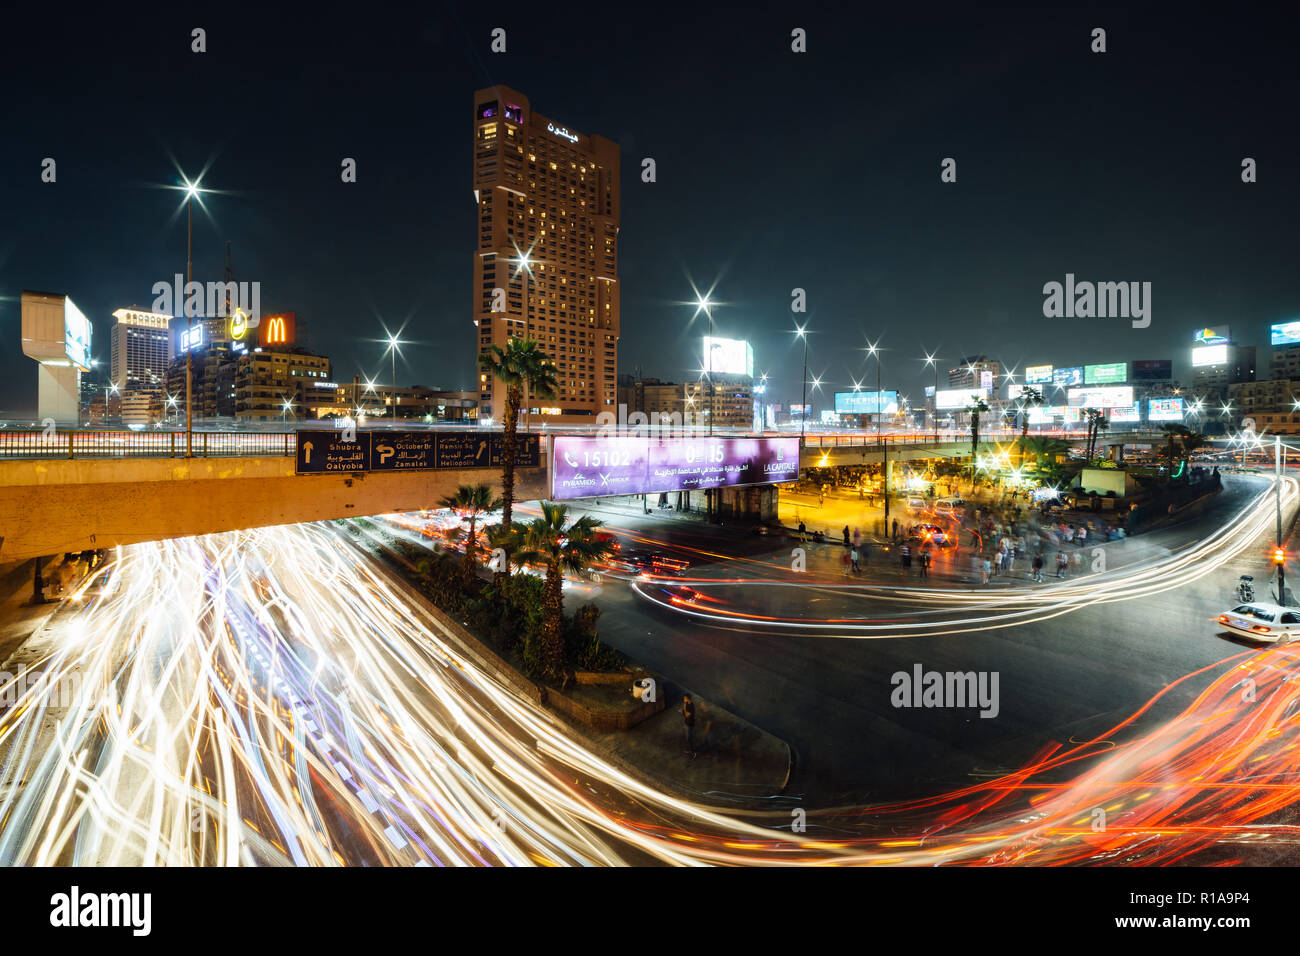 Cairo, Egypt - November 8, 2018: The busy Abdel Munim Riad square and bus station in central Cairo at night, long exposure with traffic light trails. - Stock Image